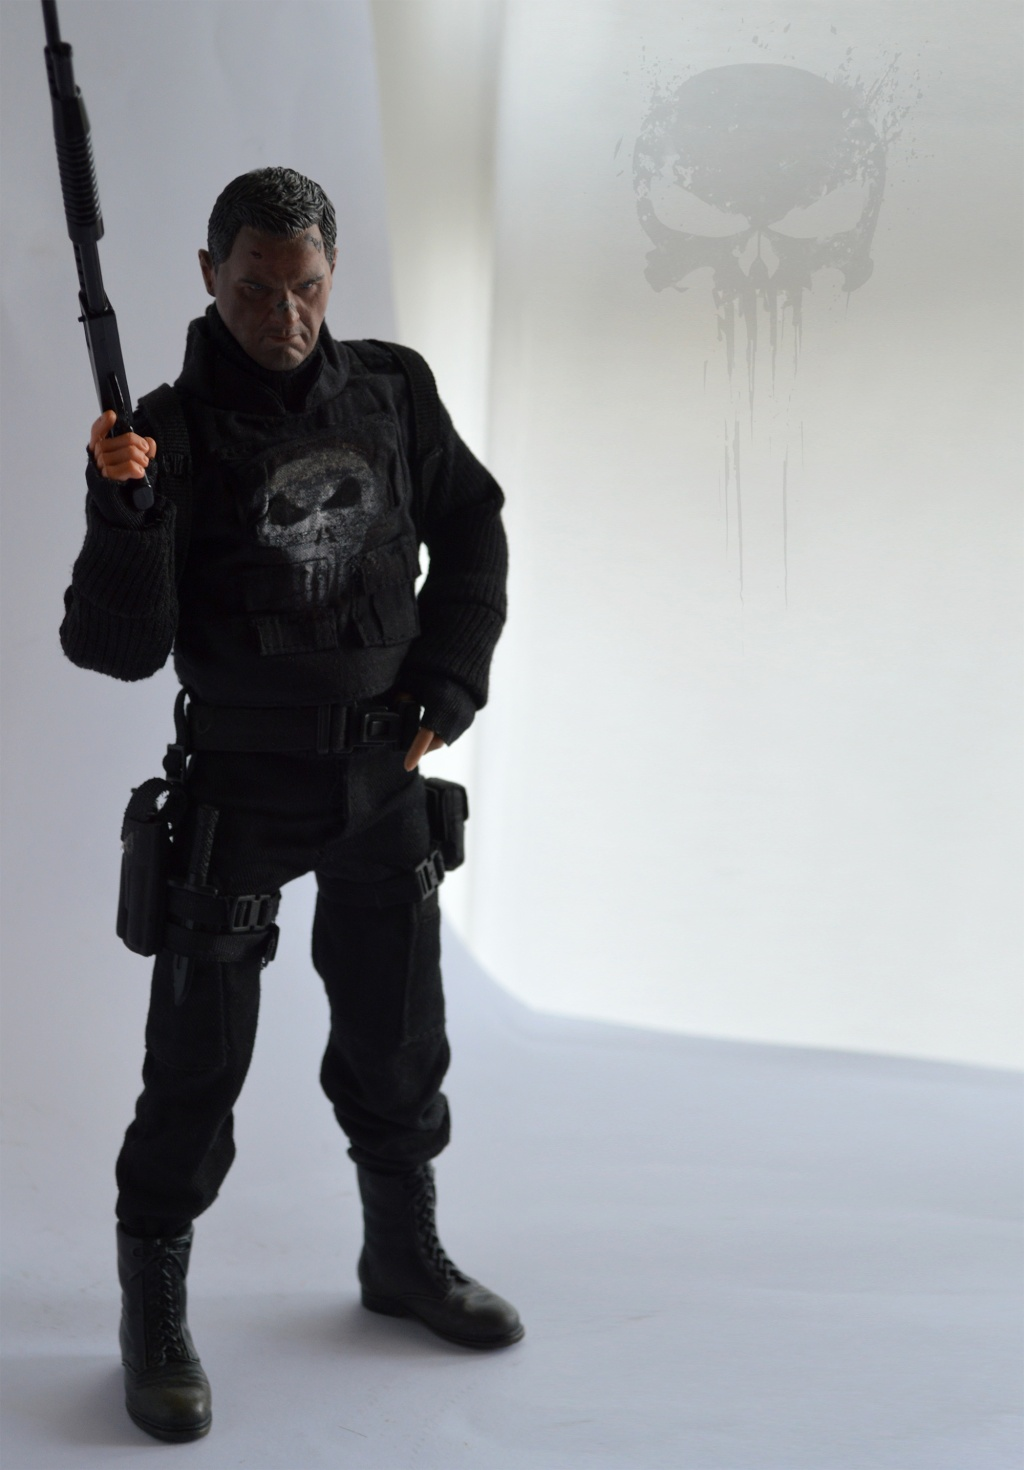 PUNISHER CUSTOM 1/6 12 inch, 30 cm 910